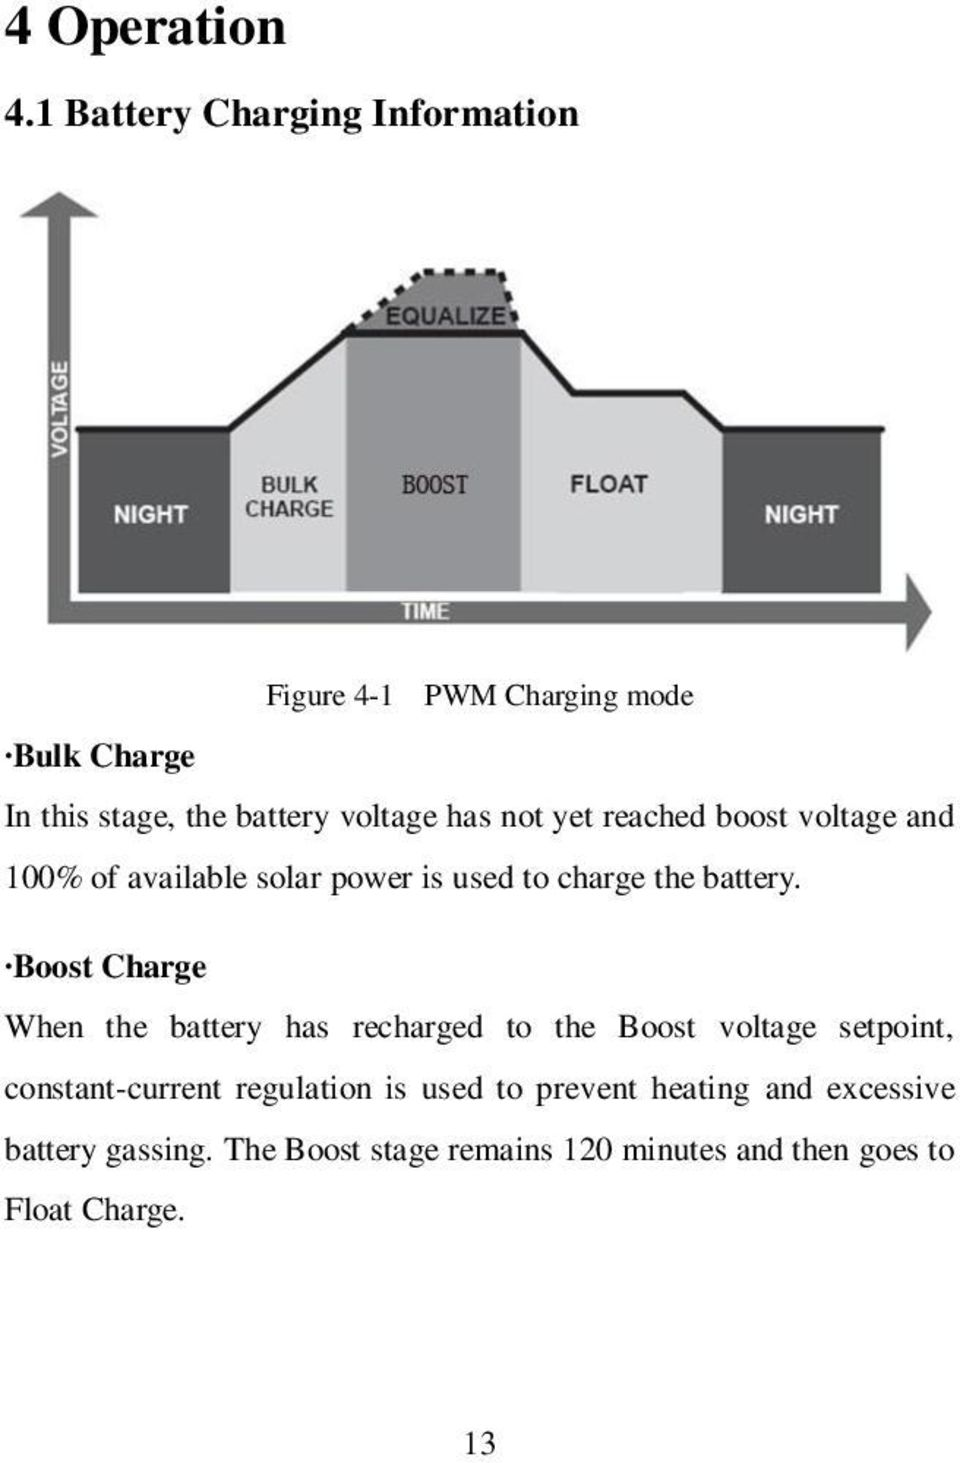 not yet reached boost voltage and 100% of available solar power is used to charge the battery.